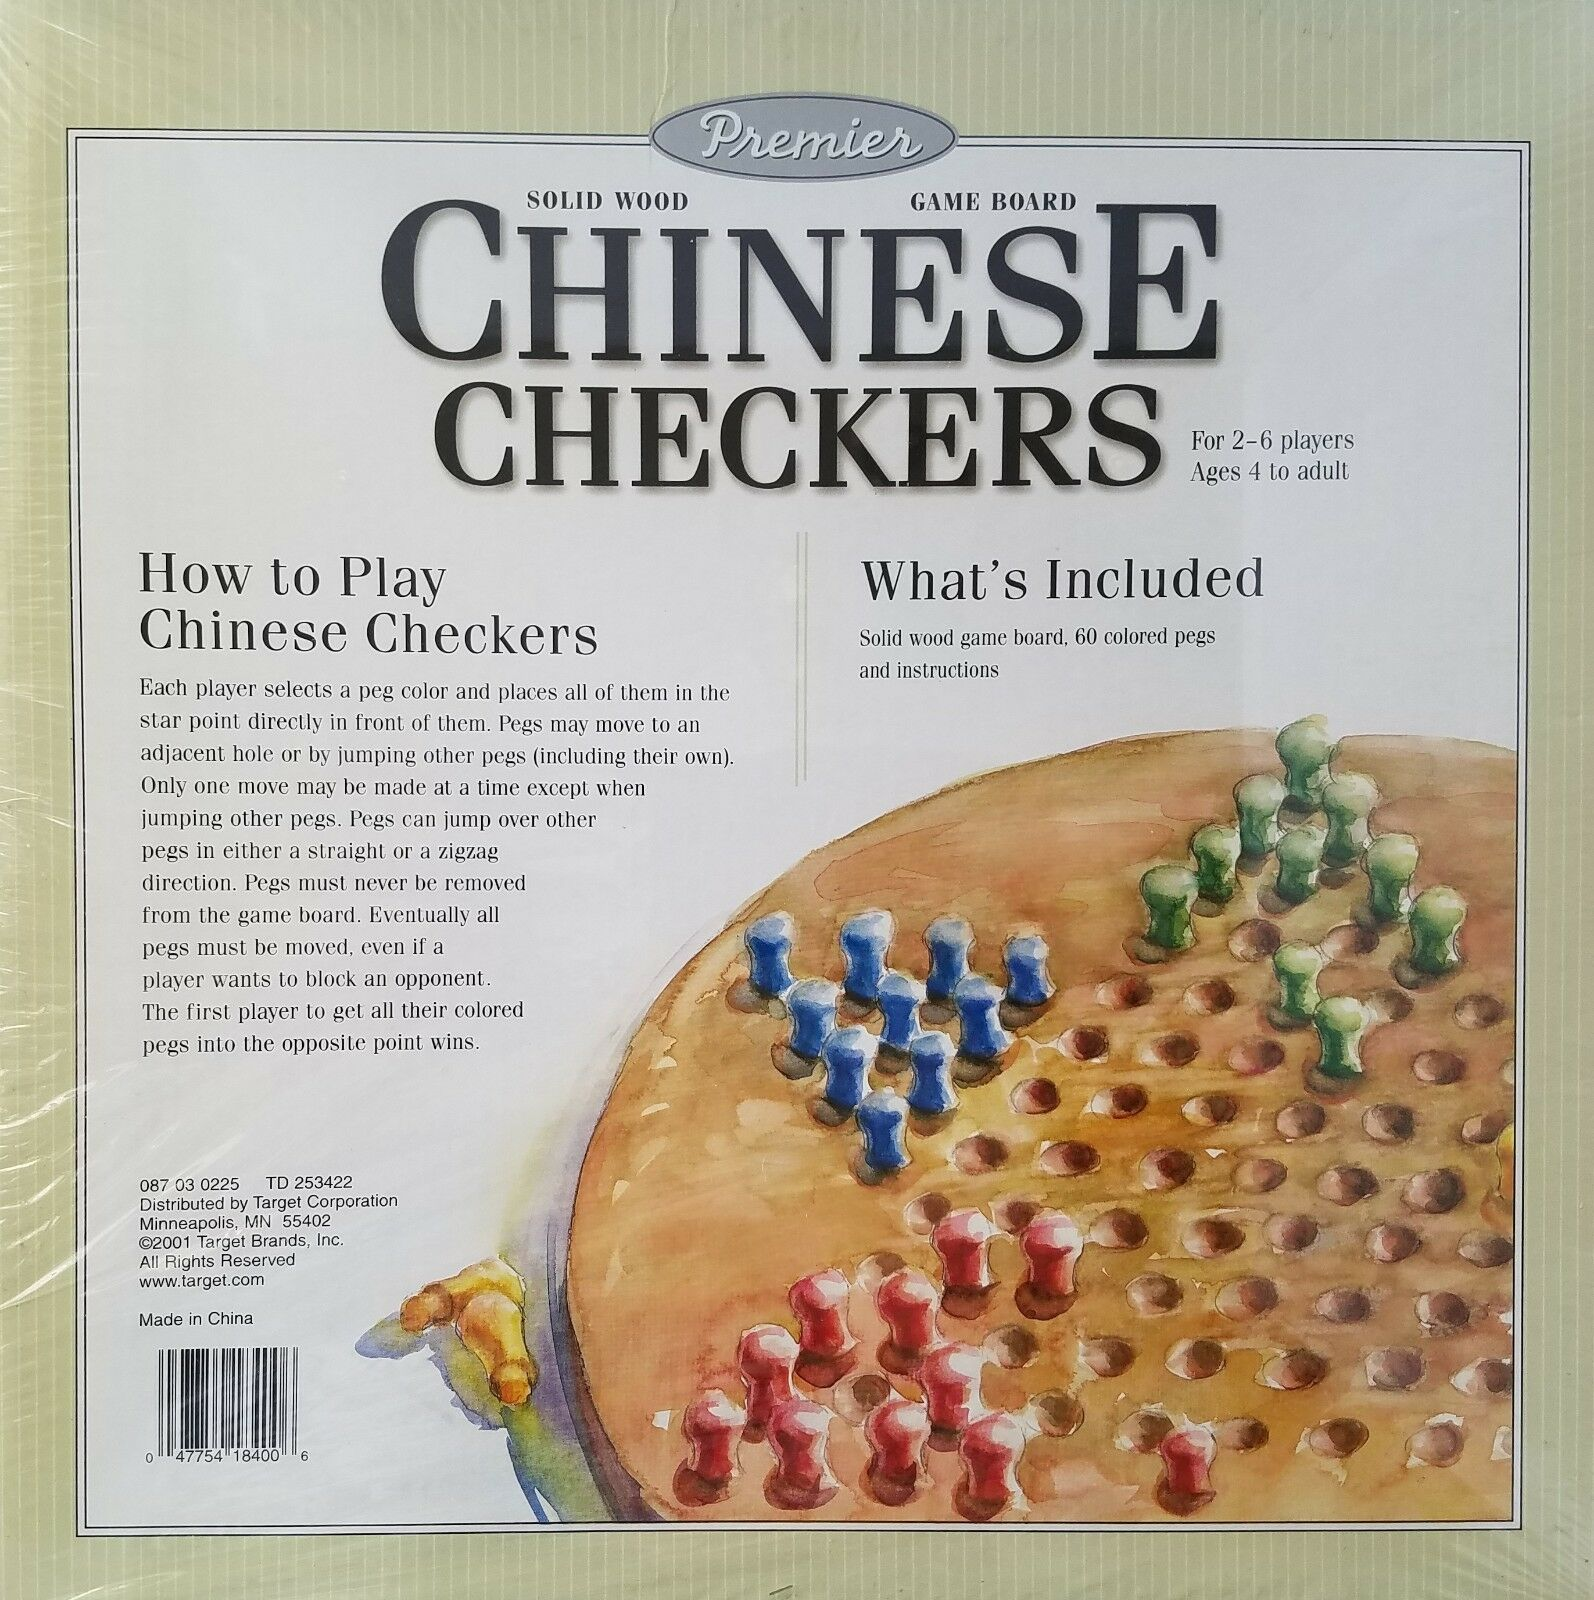 Vintage 1987 Pavilion Solid Wood Chinese Checkers Game Set